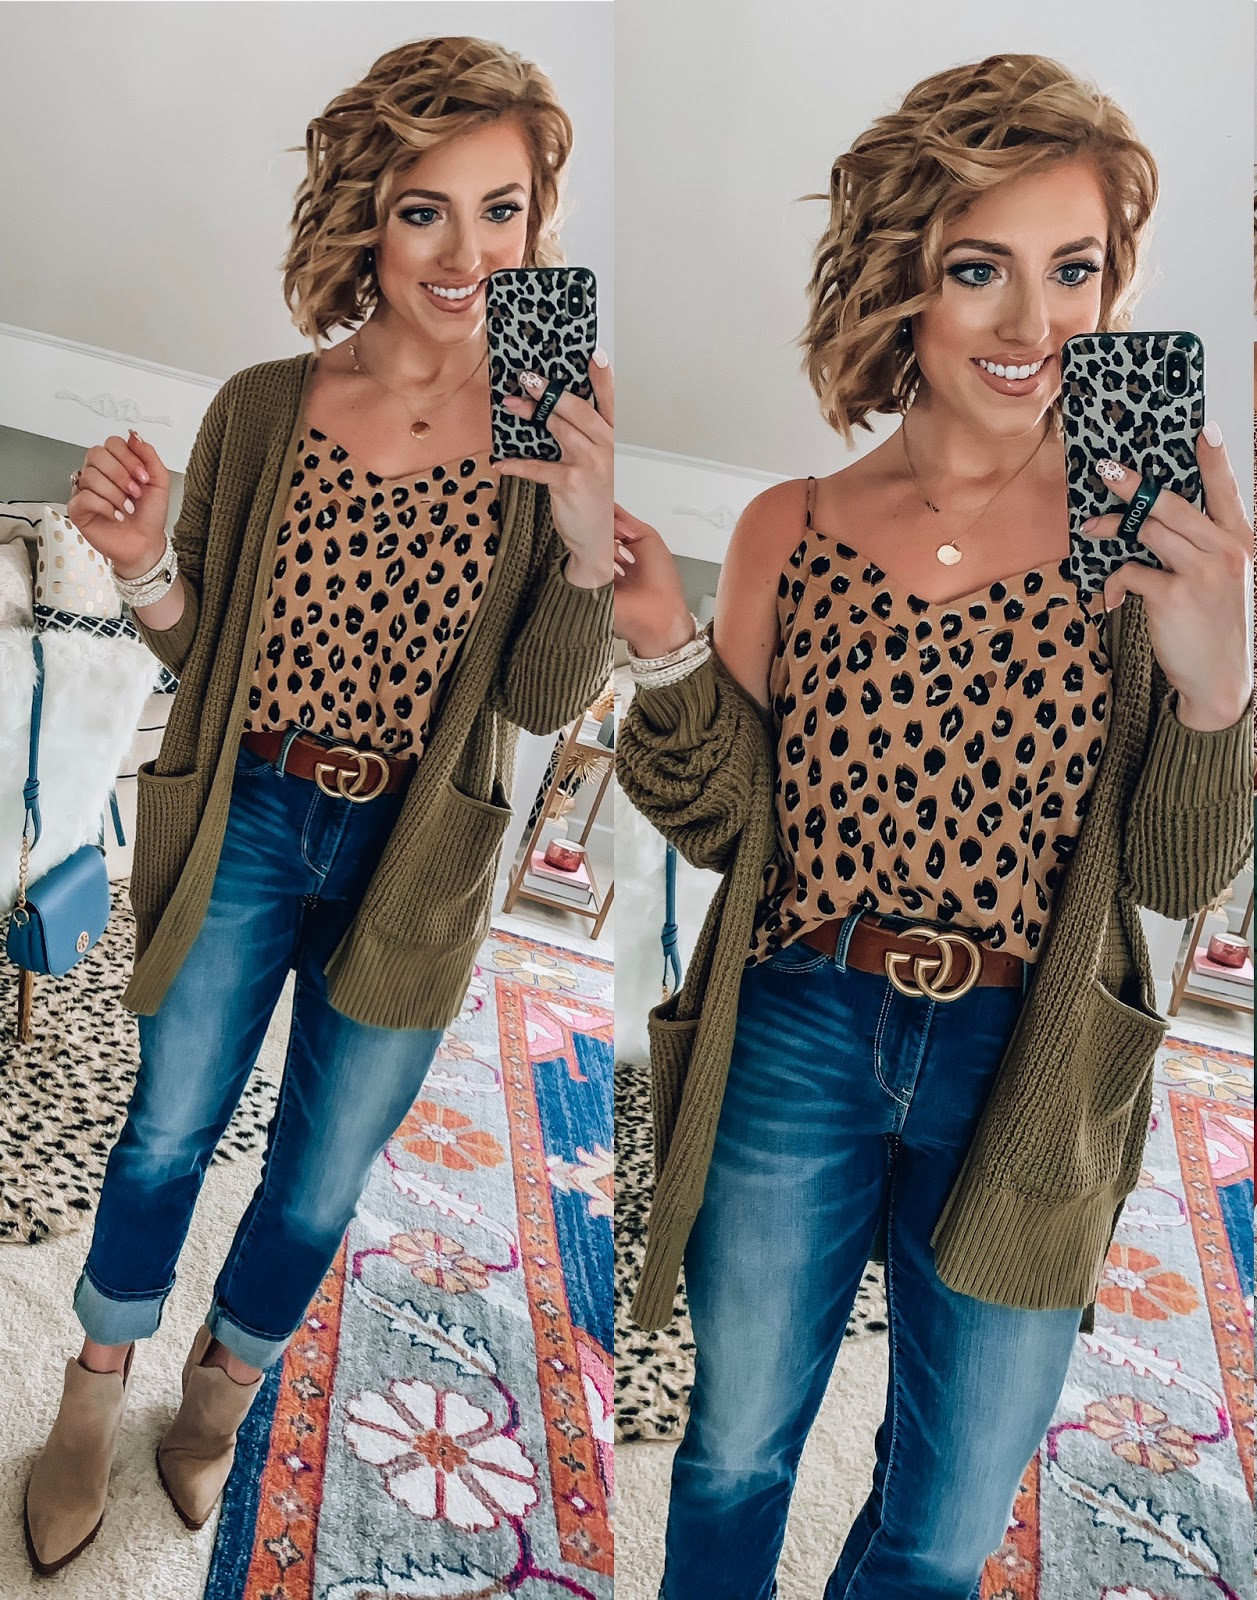 Target Fall Finds: Part One - Under $20 Leopard Cami, Under $30 Olive Cardigan + Under $30 Jeans - Something Delightful Blog